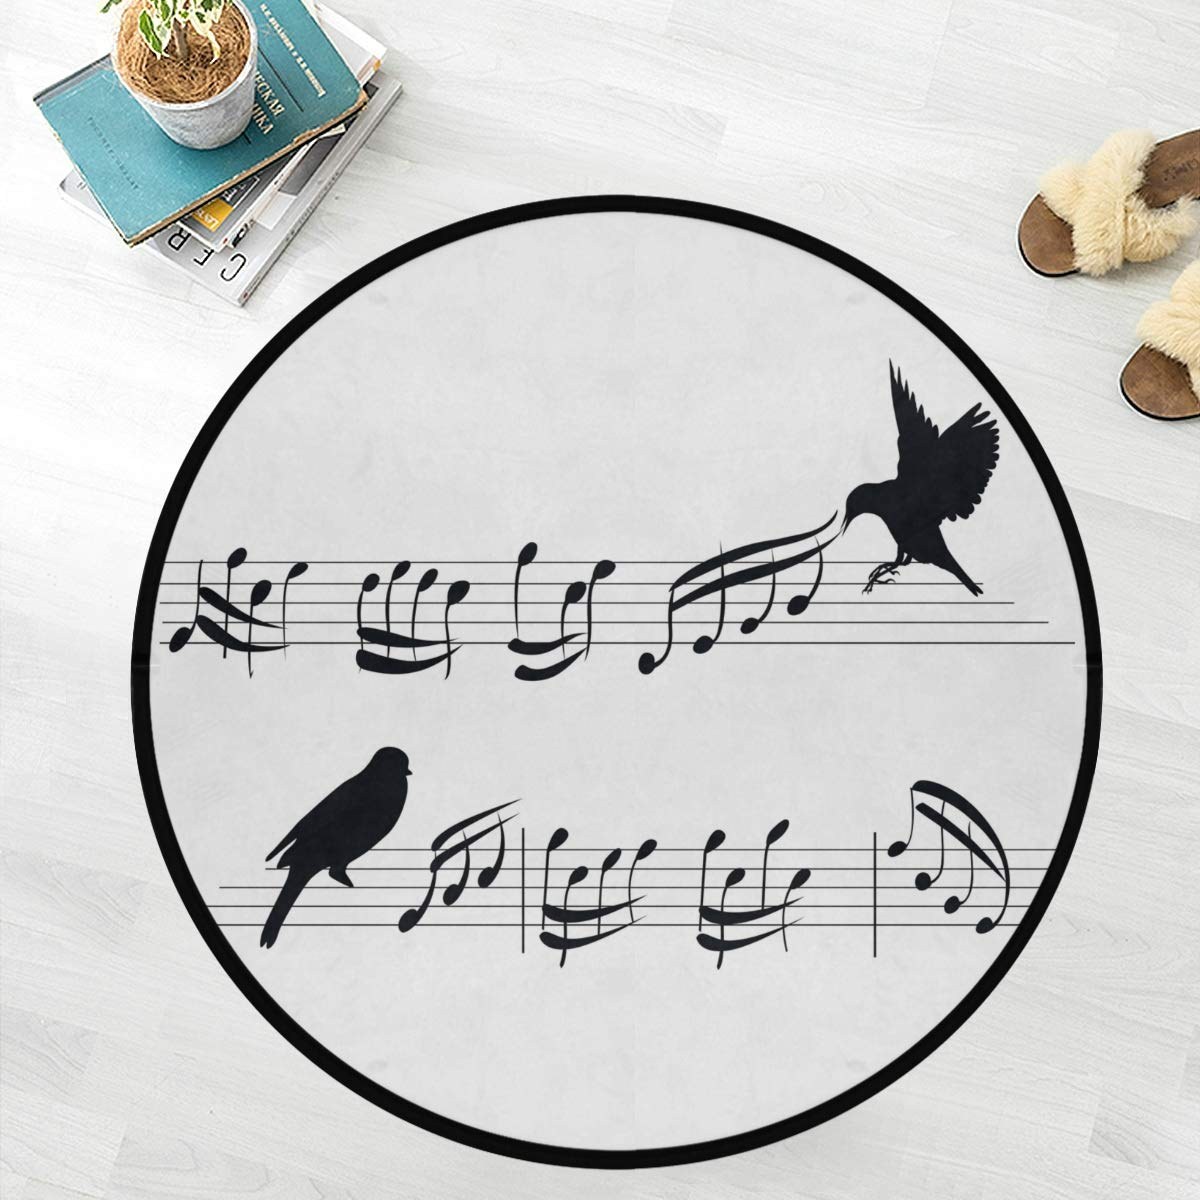 Naanle Musical Bird Anti Fatigue Round Area Rug, Black and White Non Slip Absorbent Comfort Round Rug Floor Carpet Yoga Mat for Entryway Living Room Bedroom Sofa Home Decor (3' in Diameter)